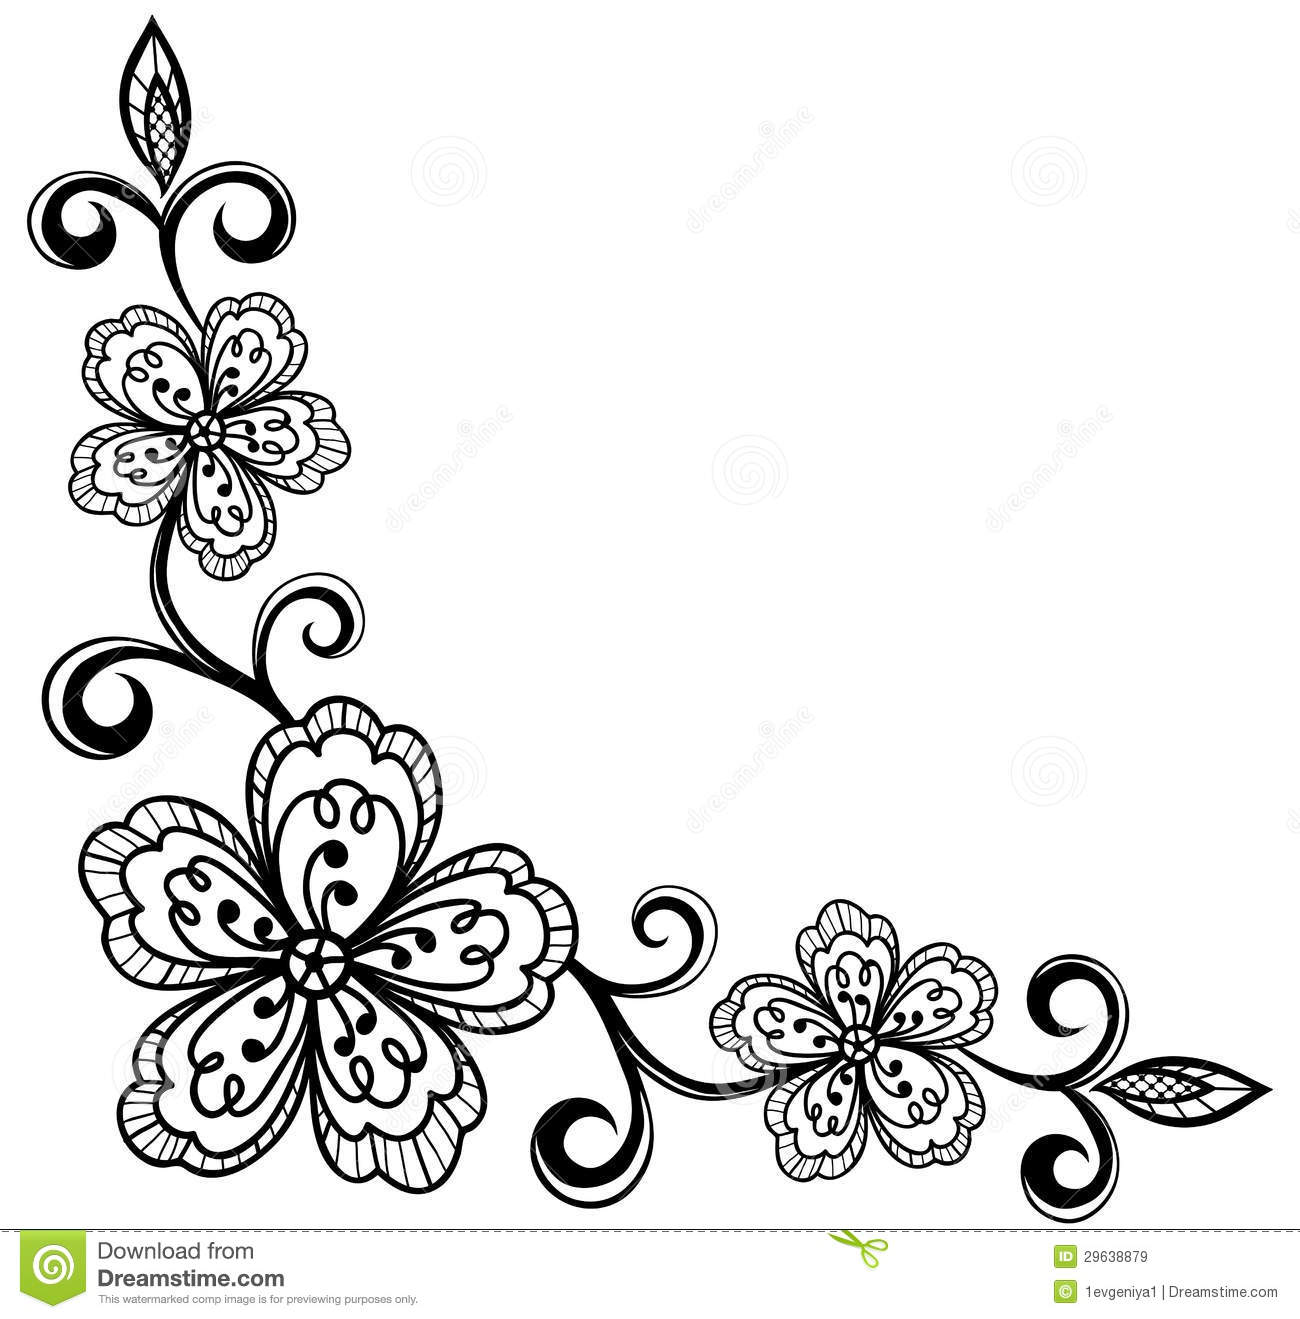 Monochrome black and white lace flower in the corner with space for corner ornamental lace flowers black and white stock illustration mightylinksfo